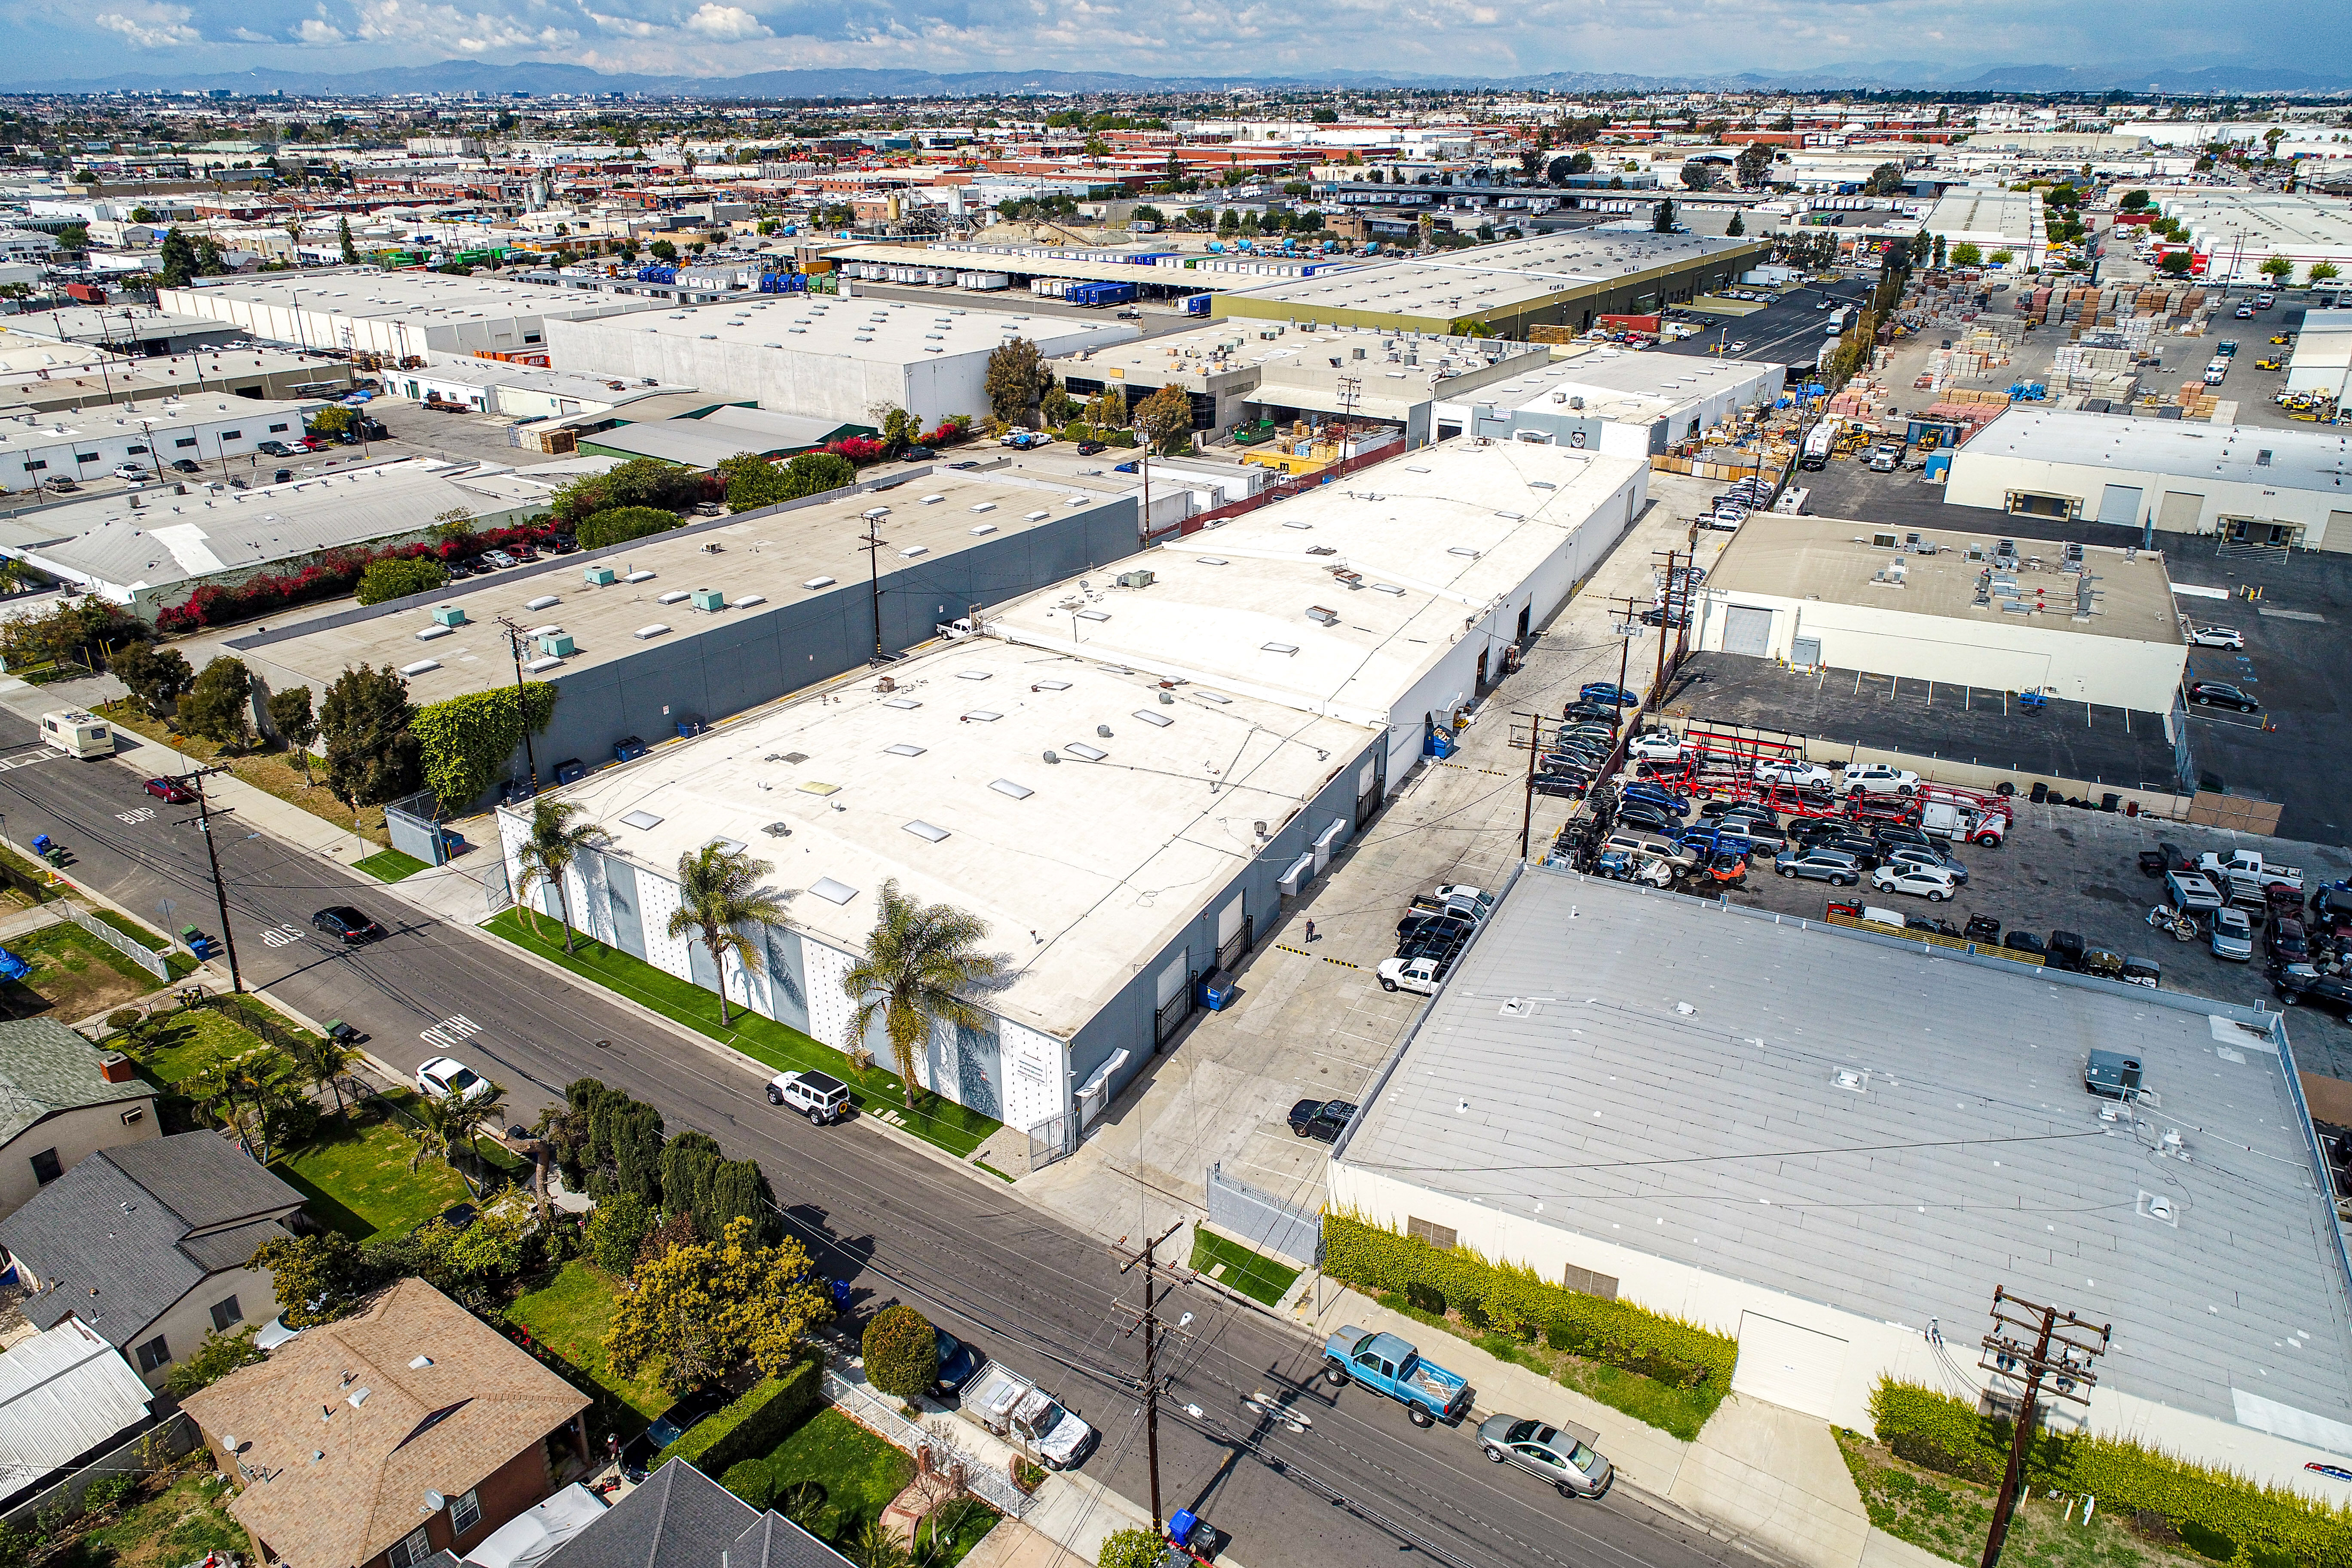 245-261 E 157th St Gardena CA Industrial building for sale